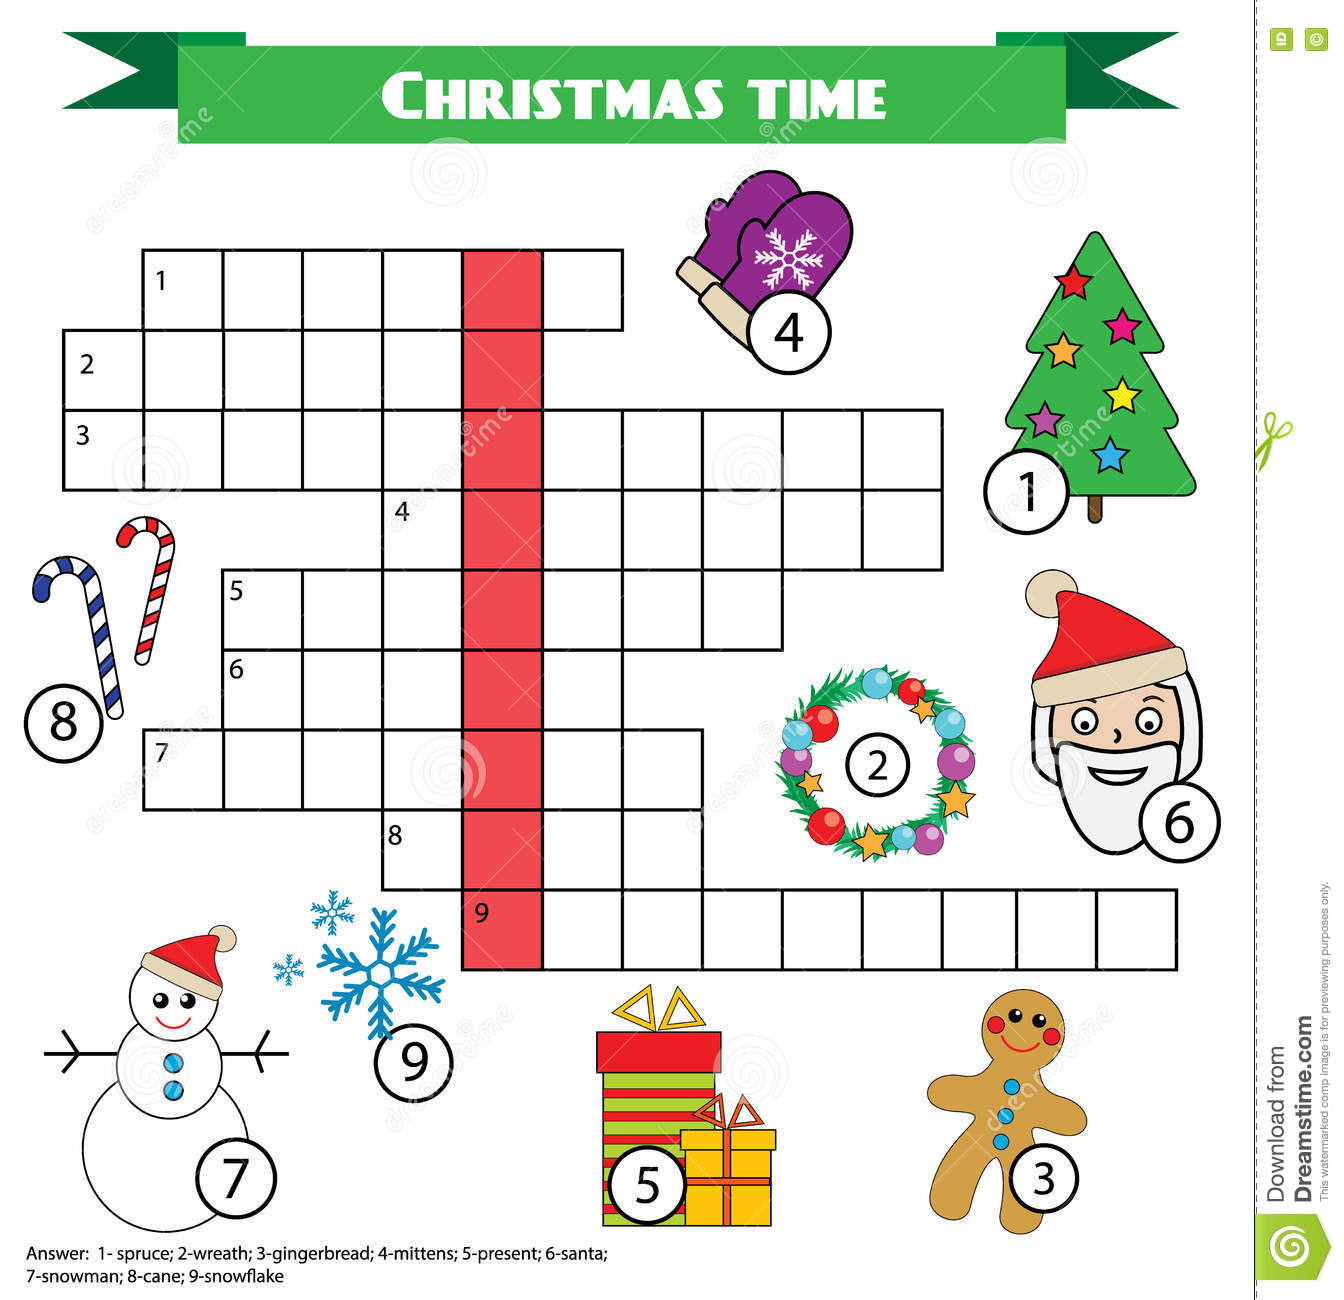 Crossword Educational Children Game With Answer Christmas